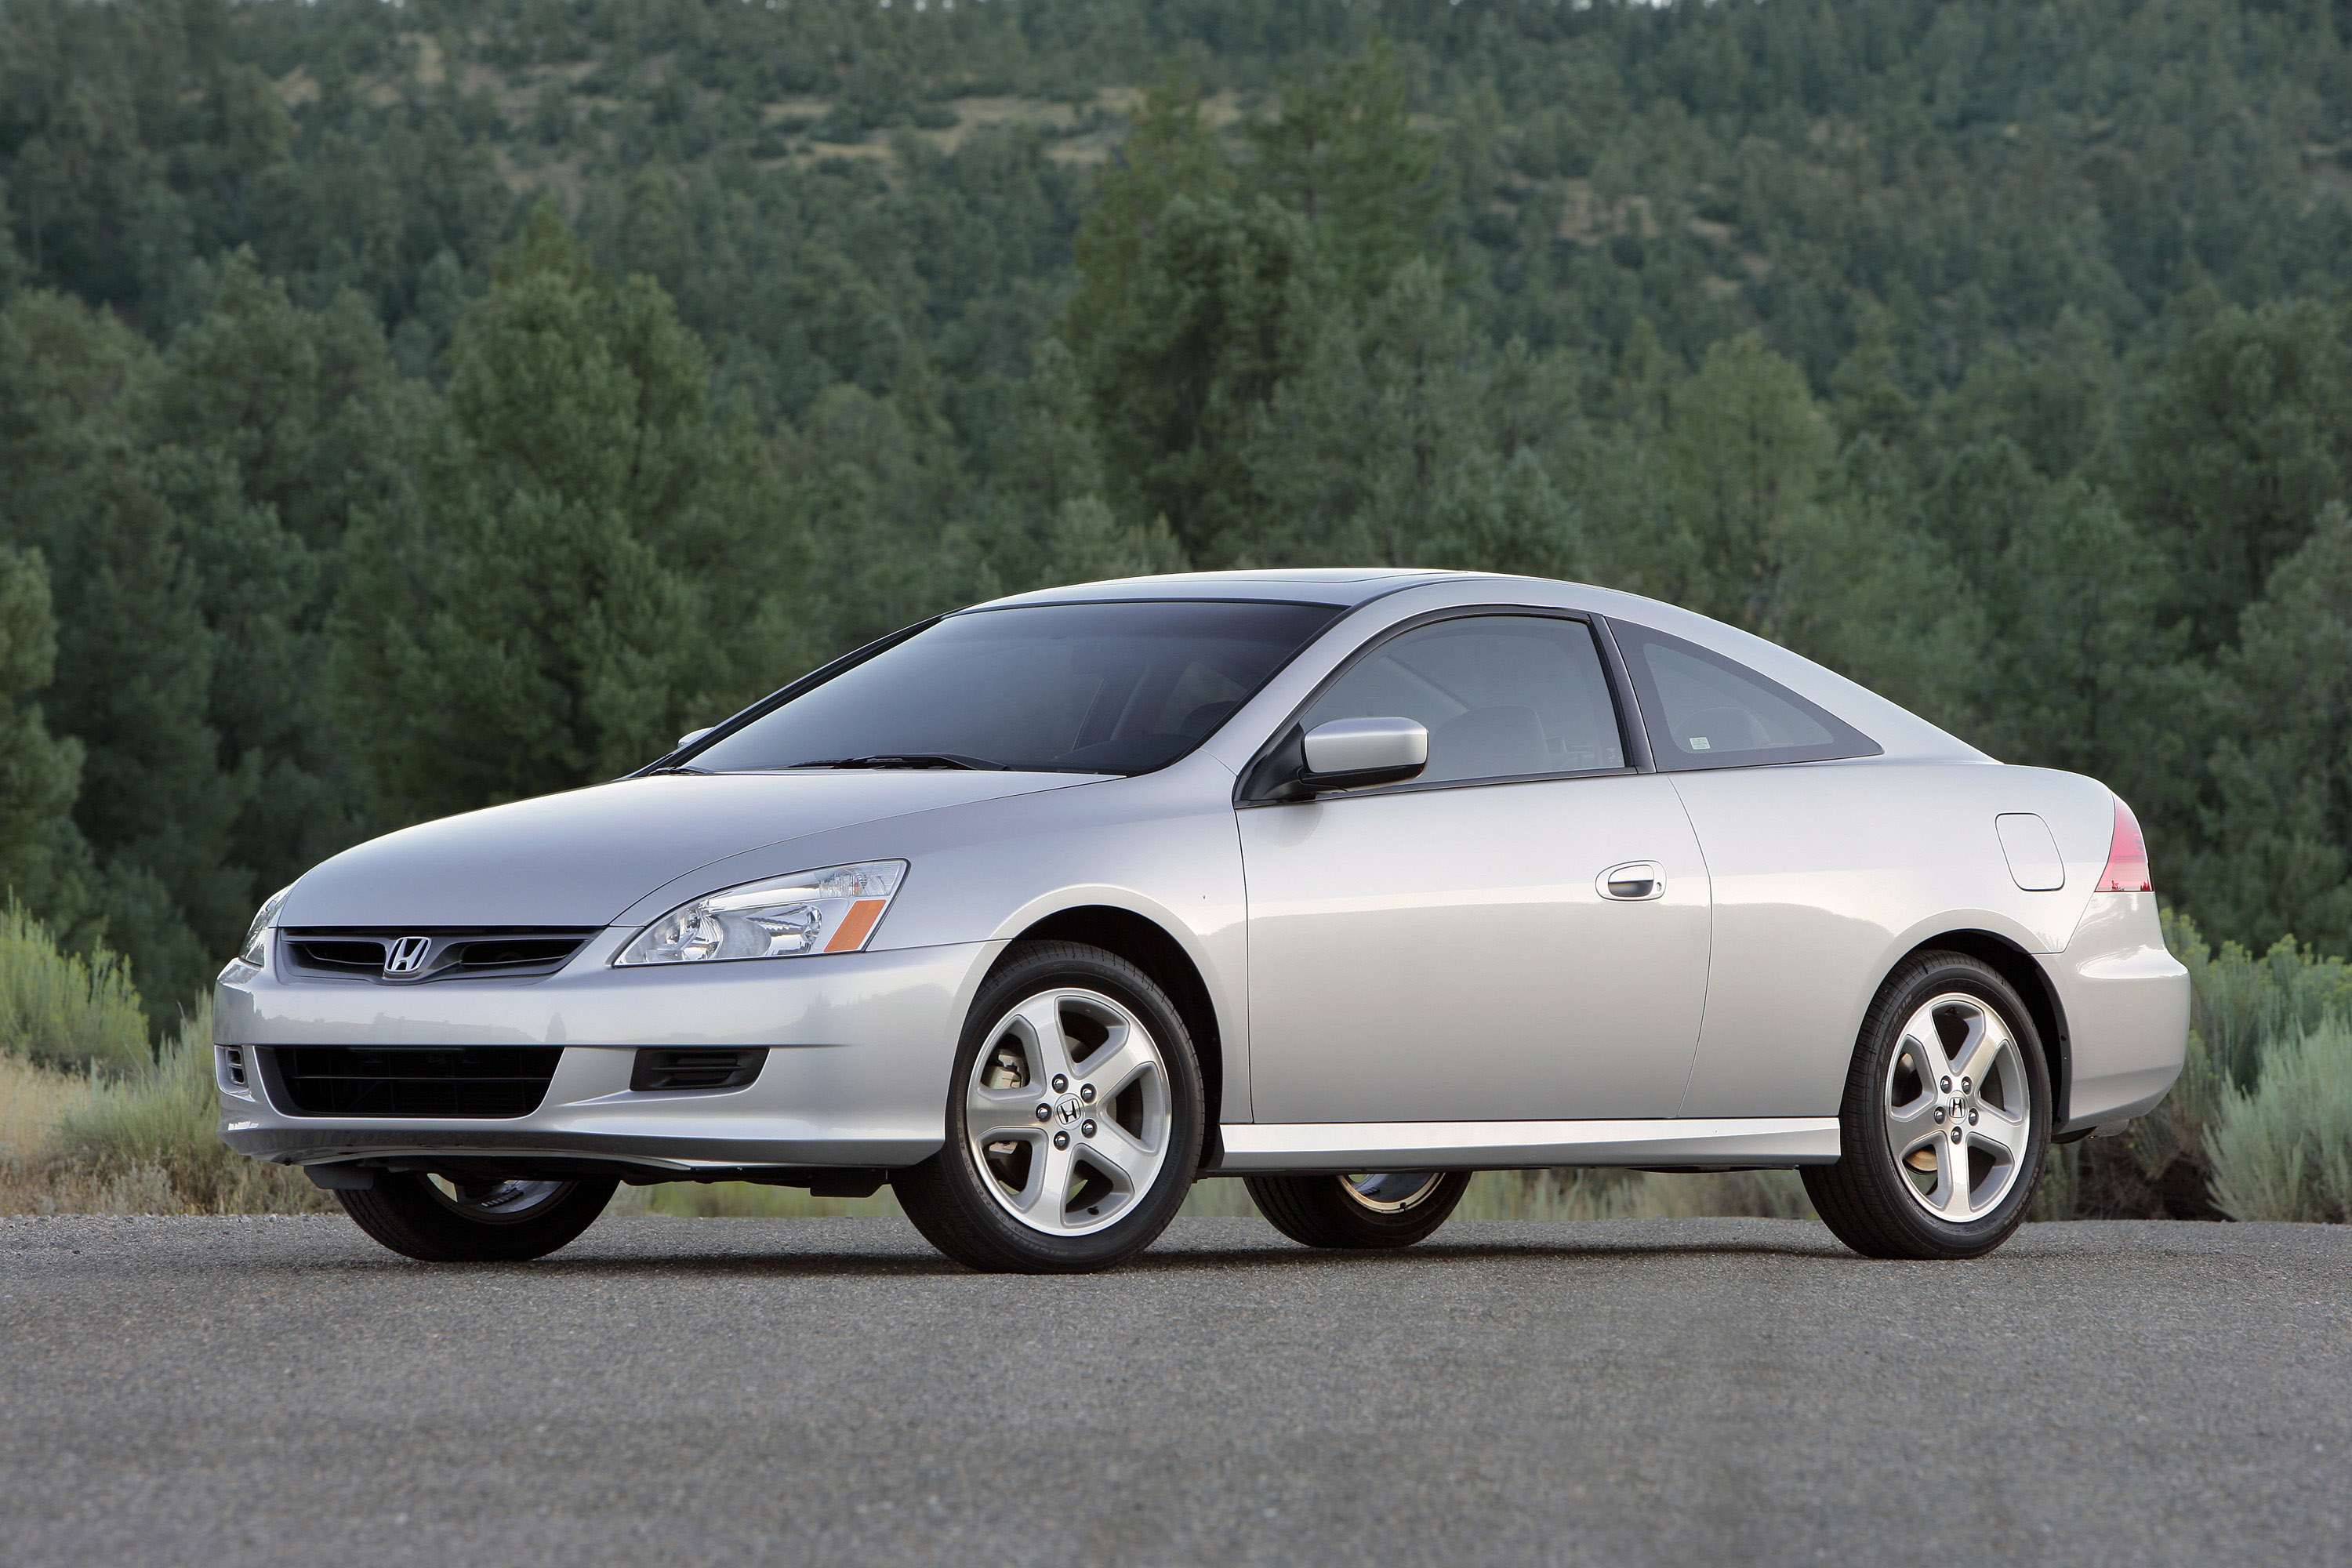 2007 honda accord coupe ex l hd pictures. Black Bedroom Furniture Sets. Home Design Ideas